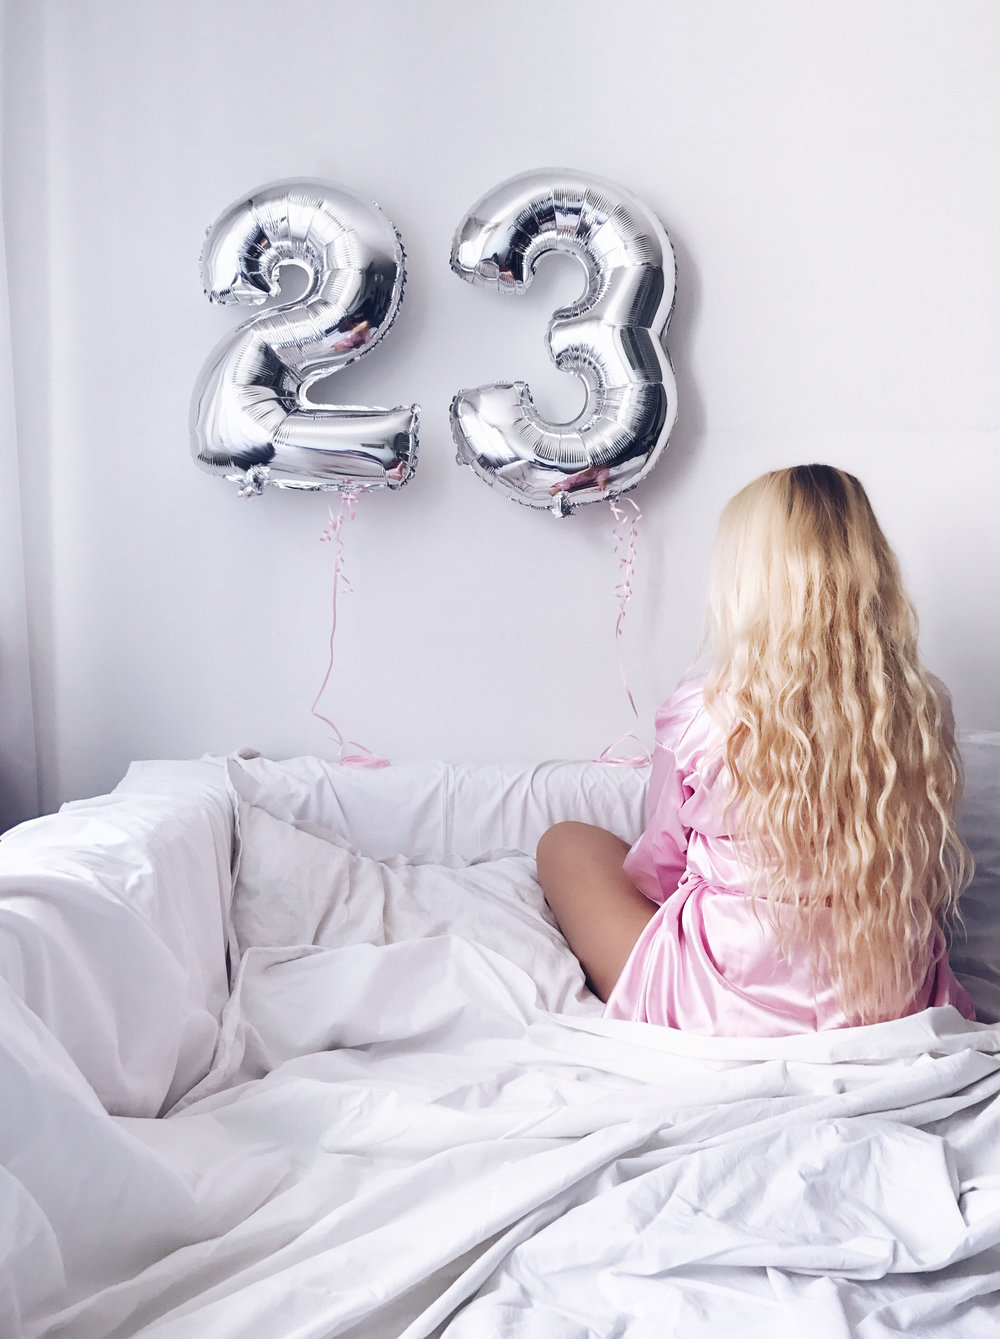 birthday present presents gift gifts bday girl balloon balloons blog blogger blonde hair hairstyle beachwaves 23rd birthday fashion style clothes